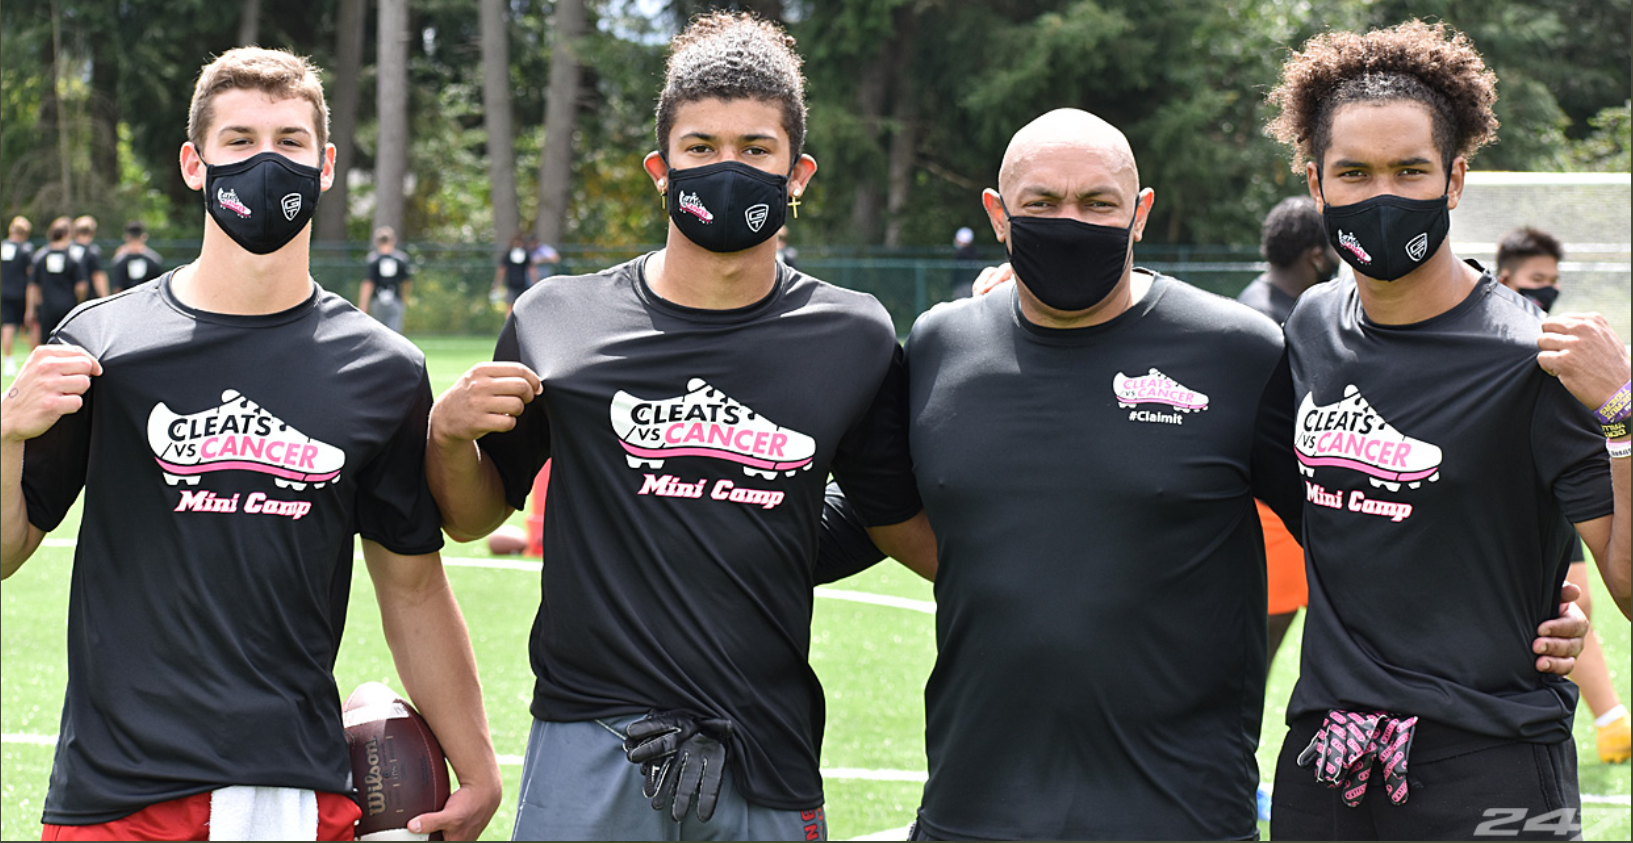 Cleats vs. Cancer Mini-Camp Brings Hope to Washington HS Players